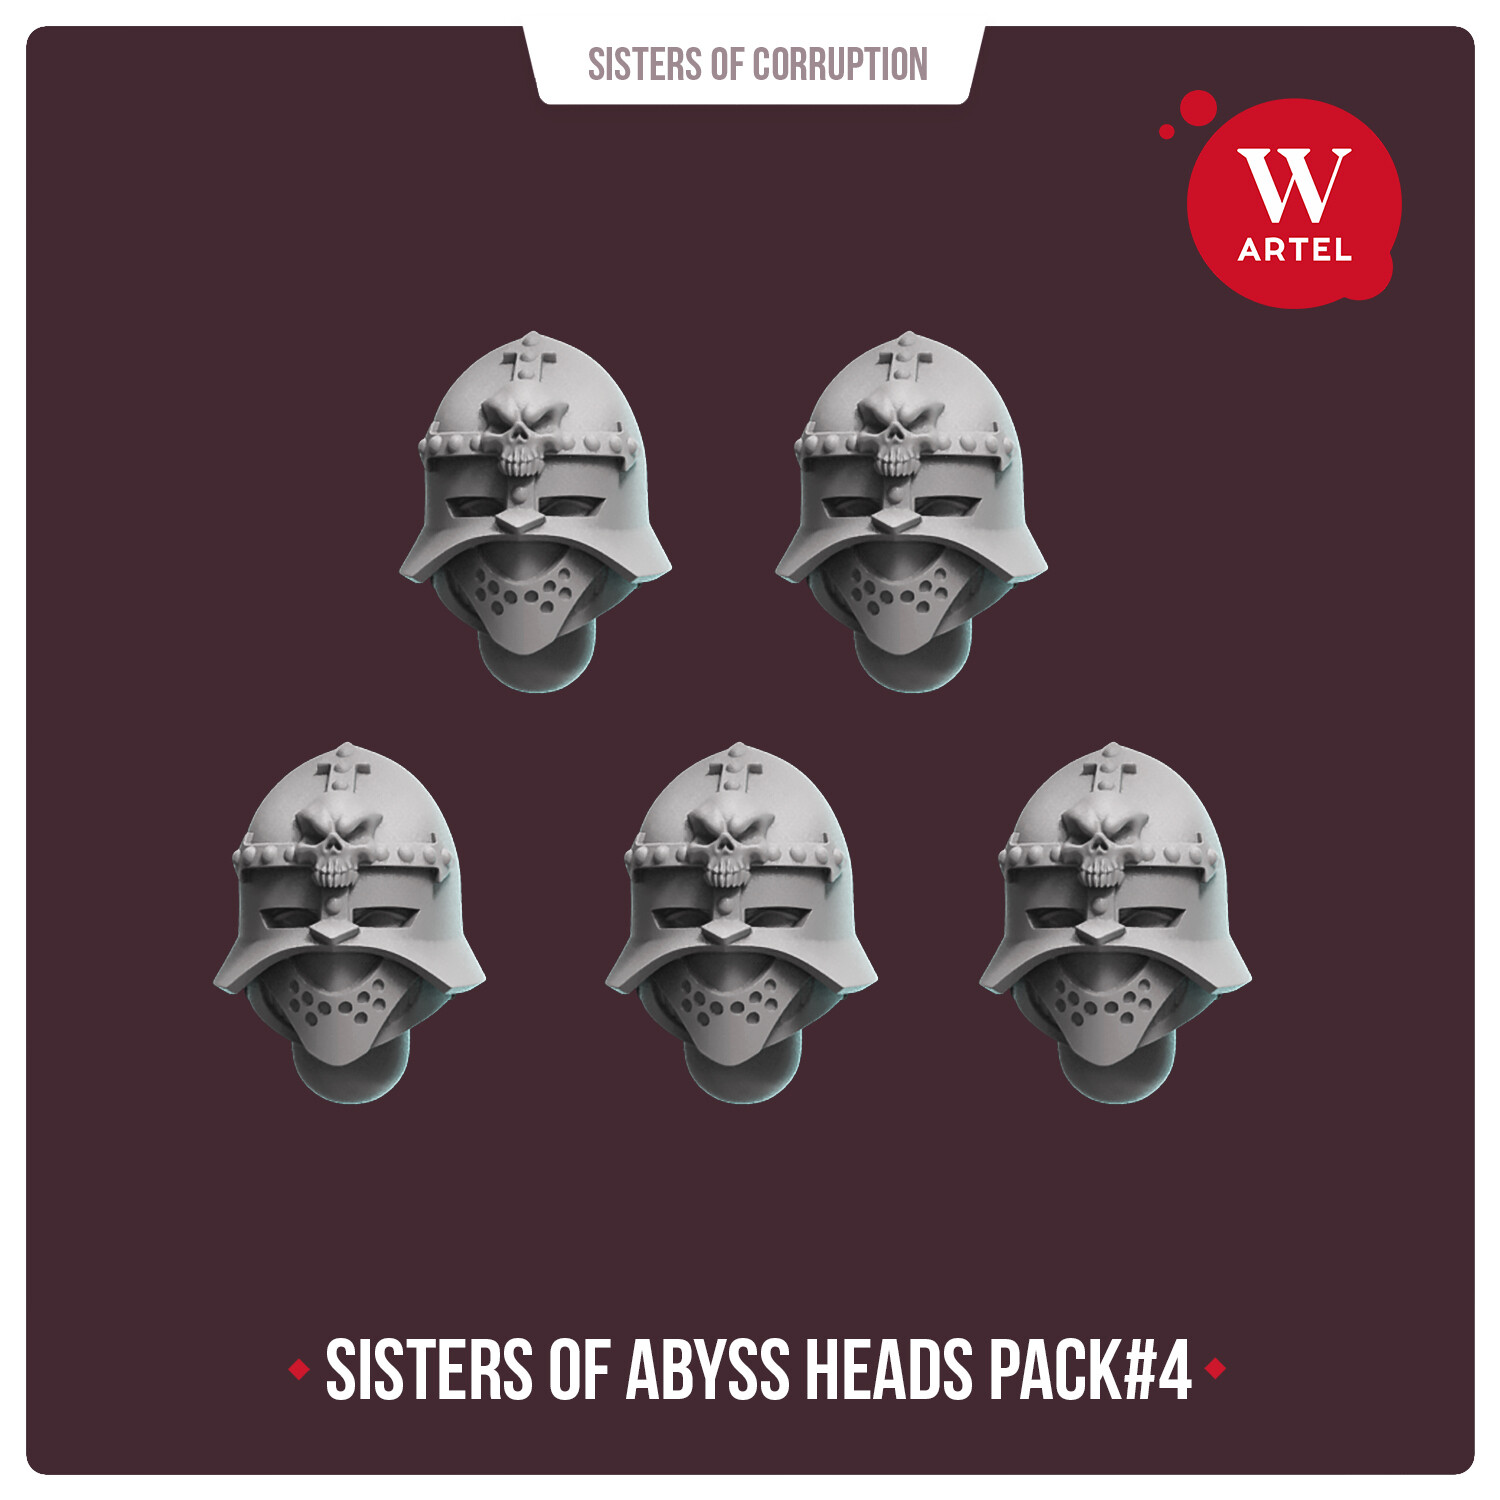 Sisters of Abyss Heads pack#4